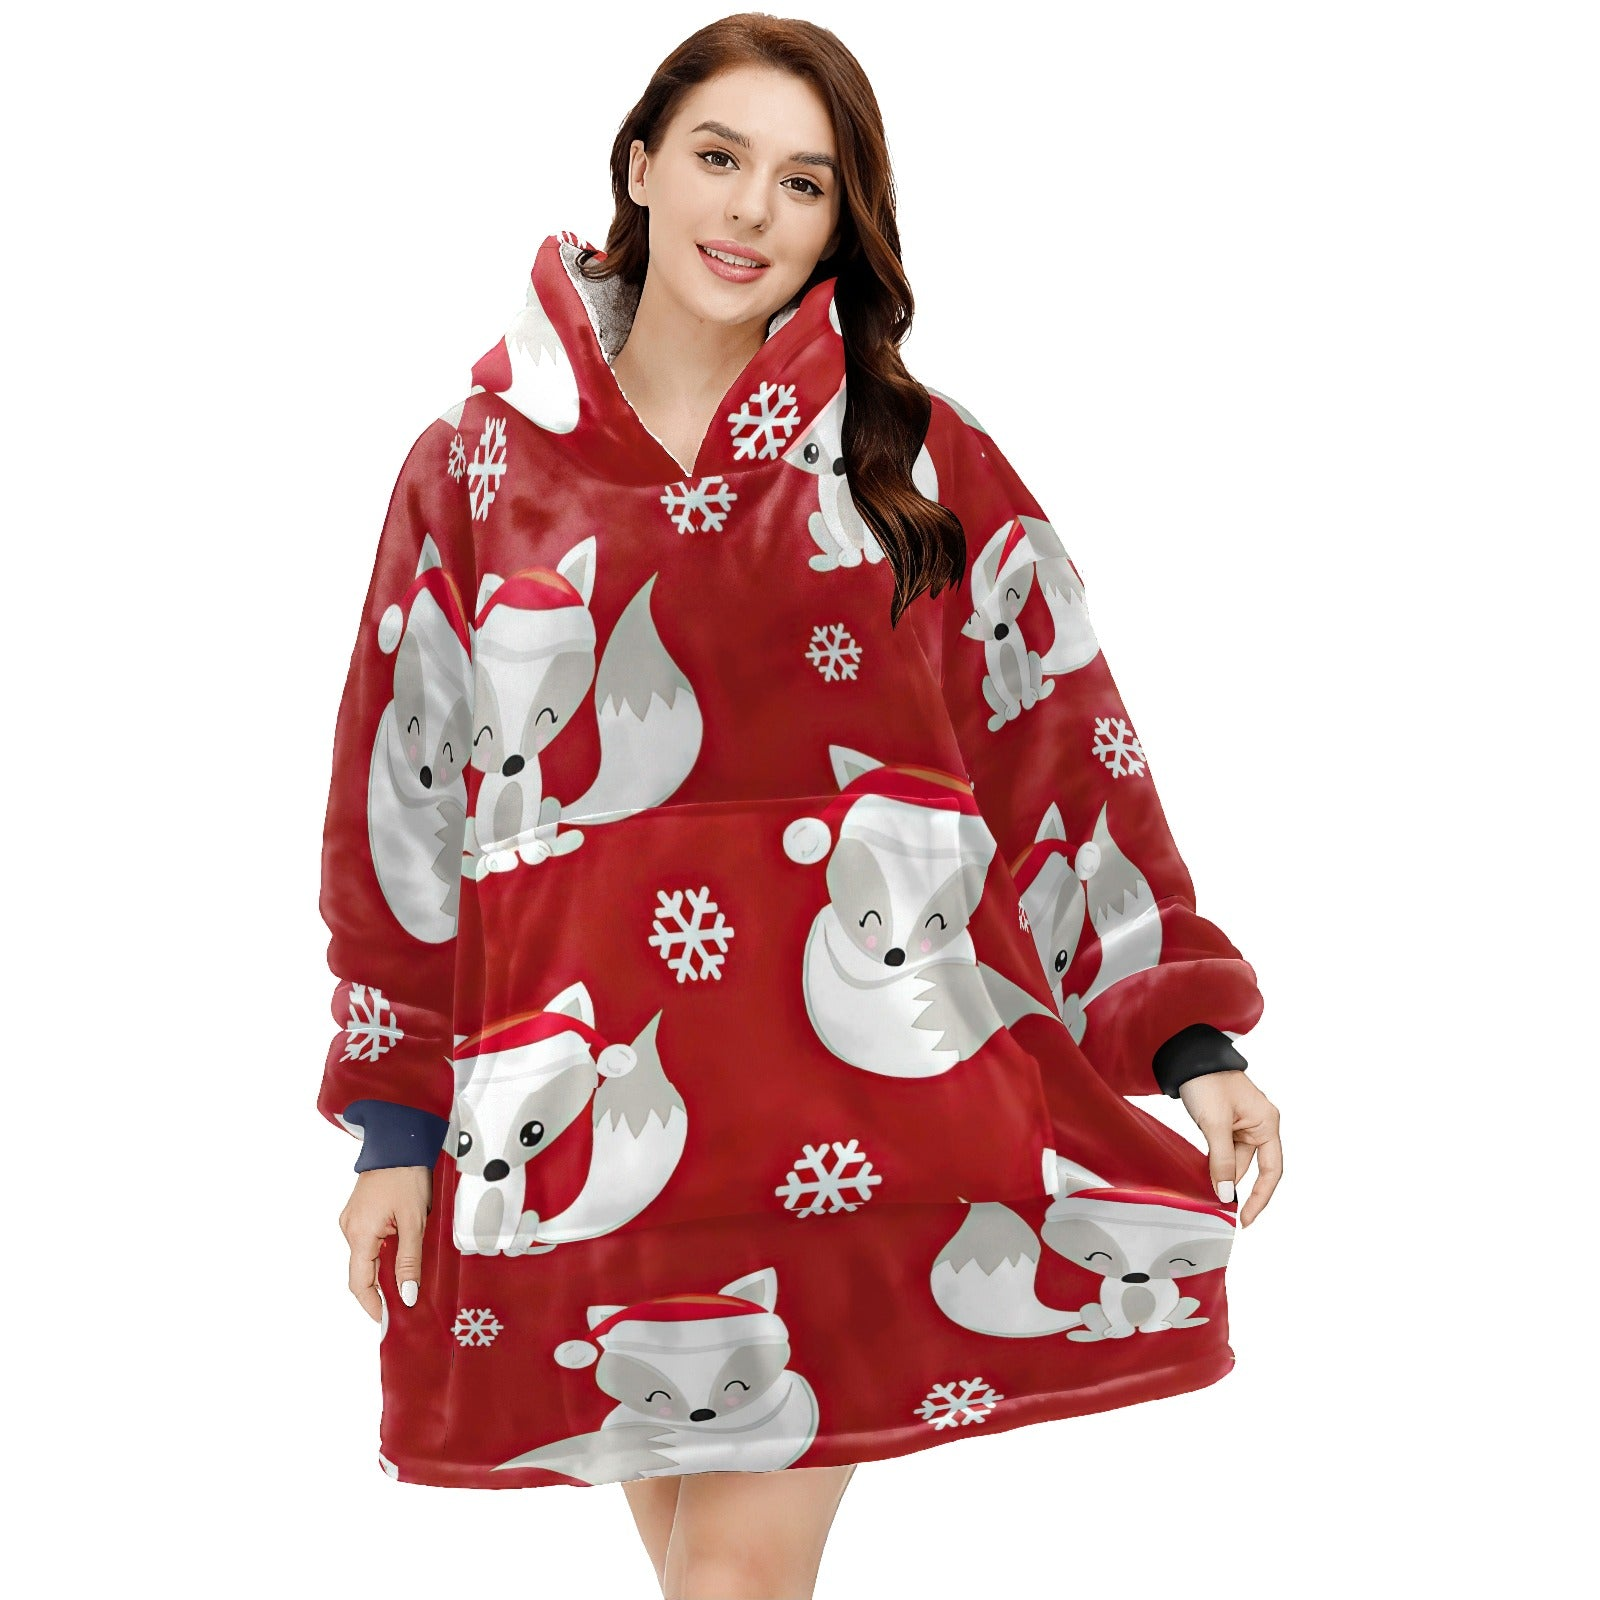 THE SPELL OF THE CHRISTMAS FOXES Hoodie Blanket Sweatshirt